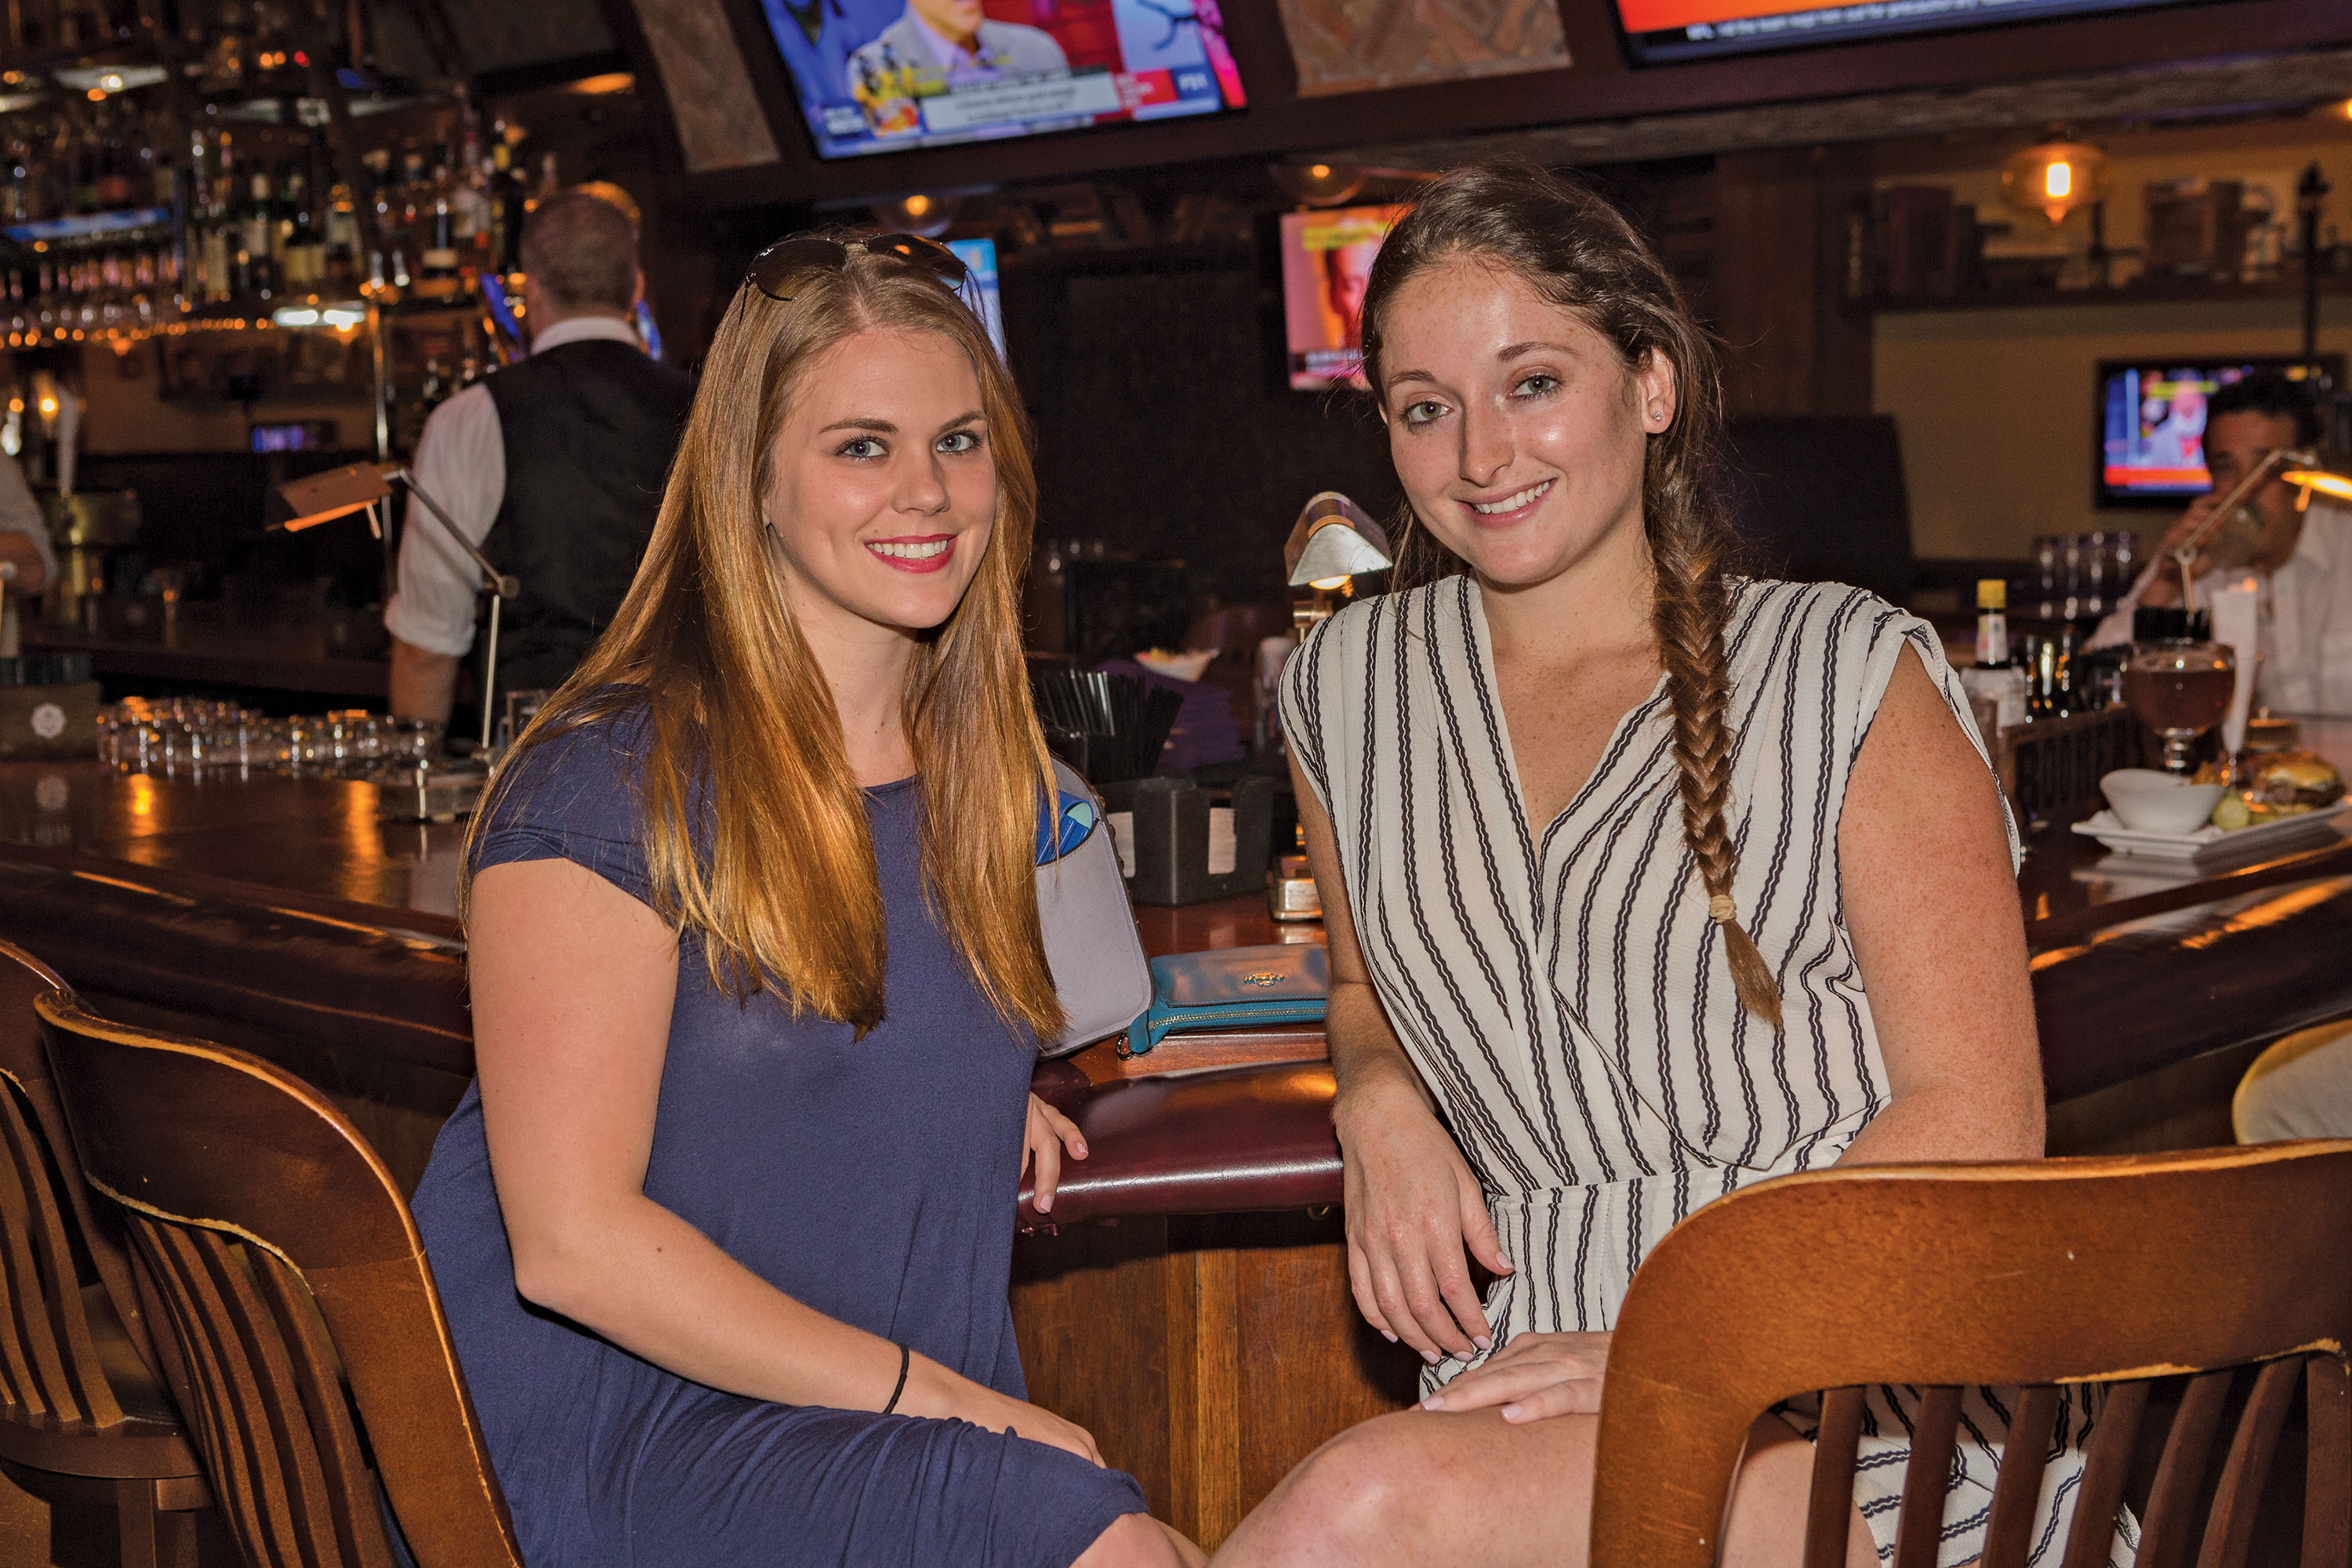 megan-mailloux-ally-binkley-the-royal-pig-pub-fort-lauderdale-venice-magazine